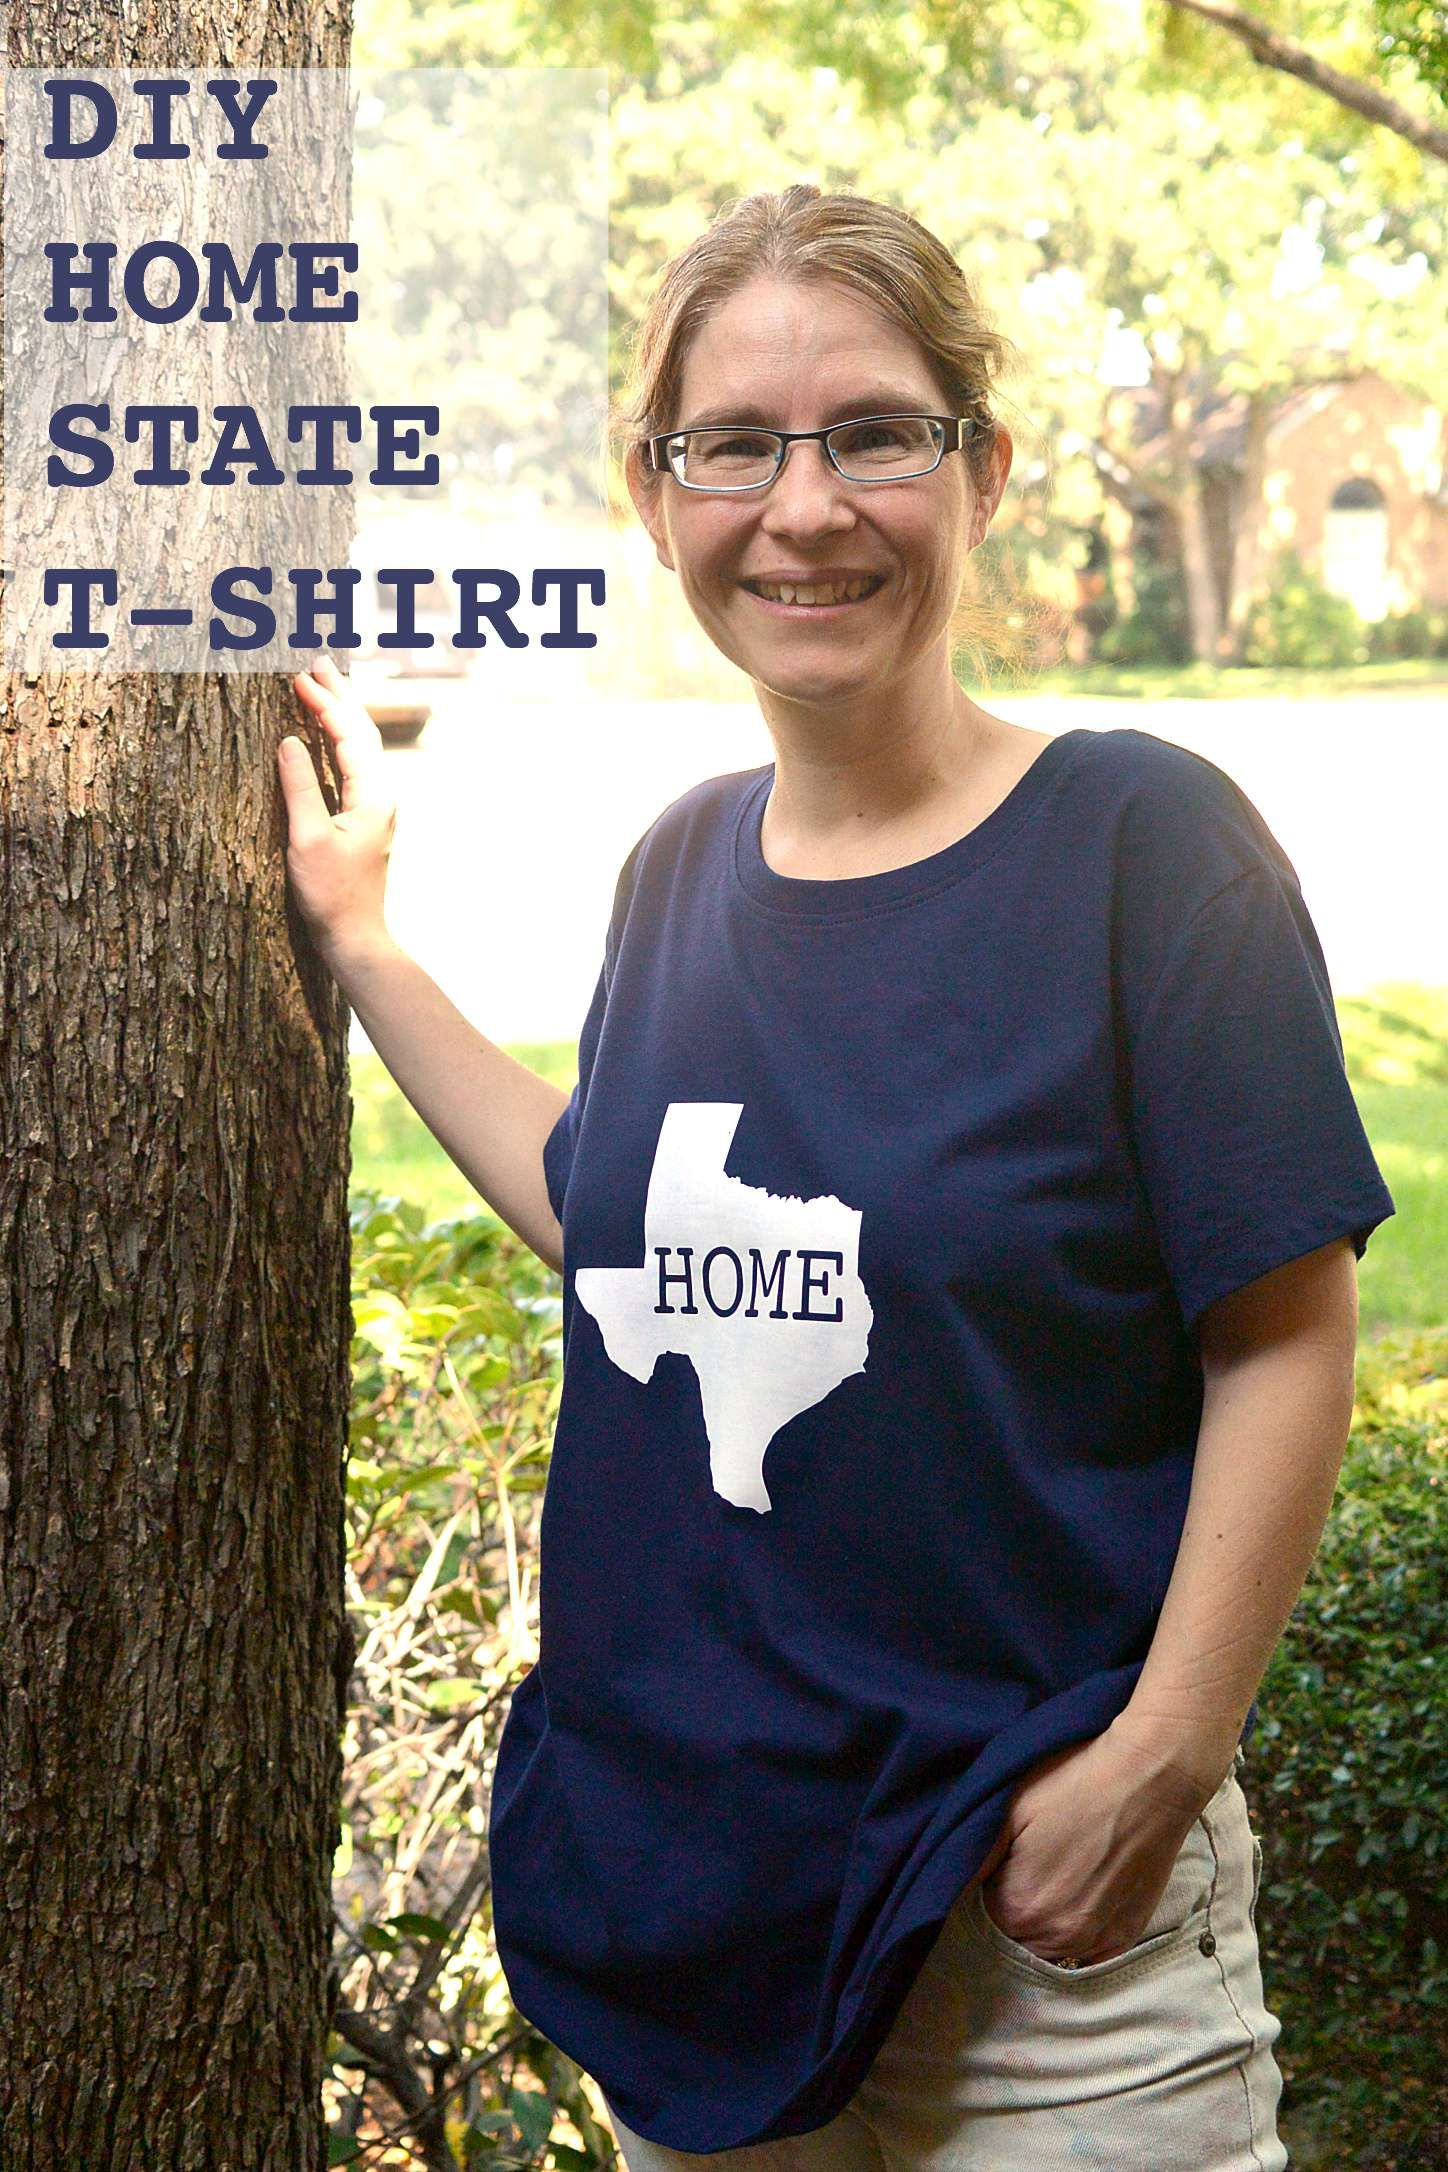 Diy home state tshirt three different directions home